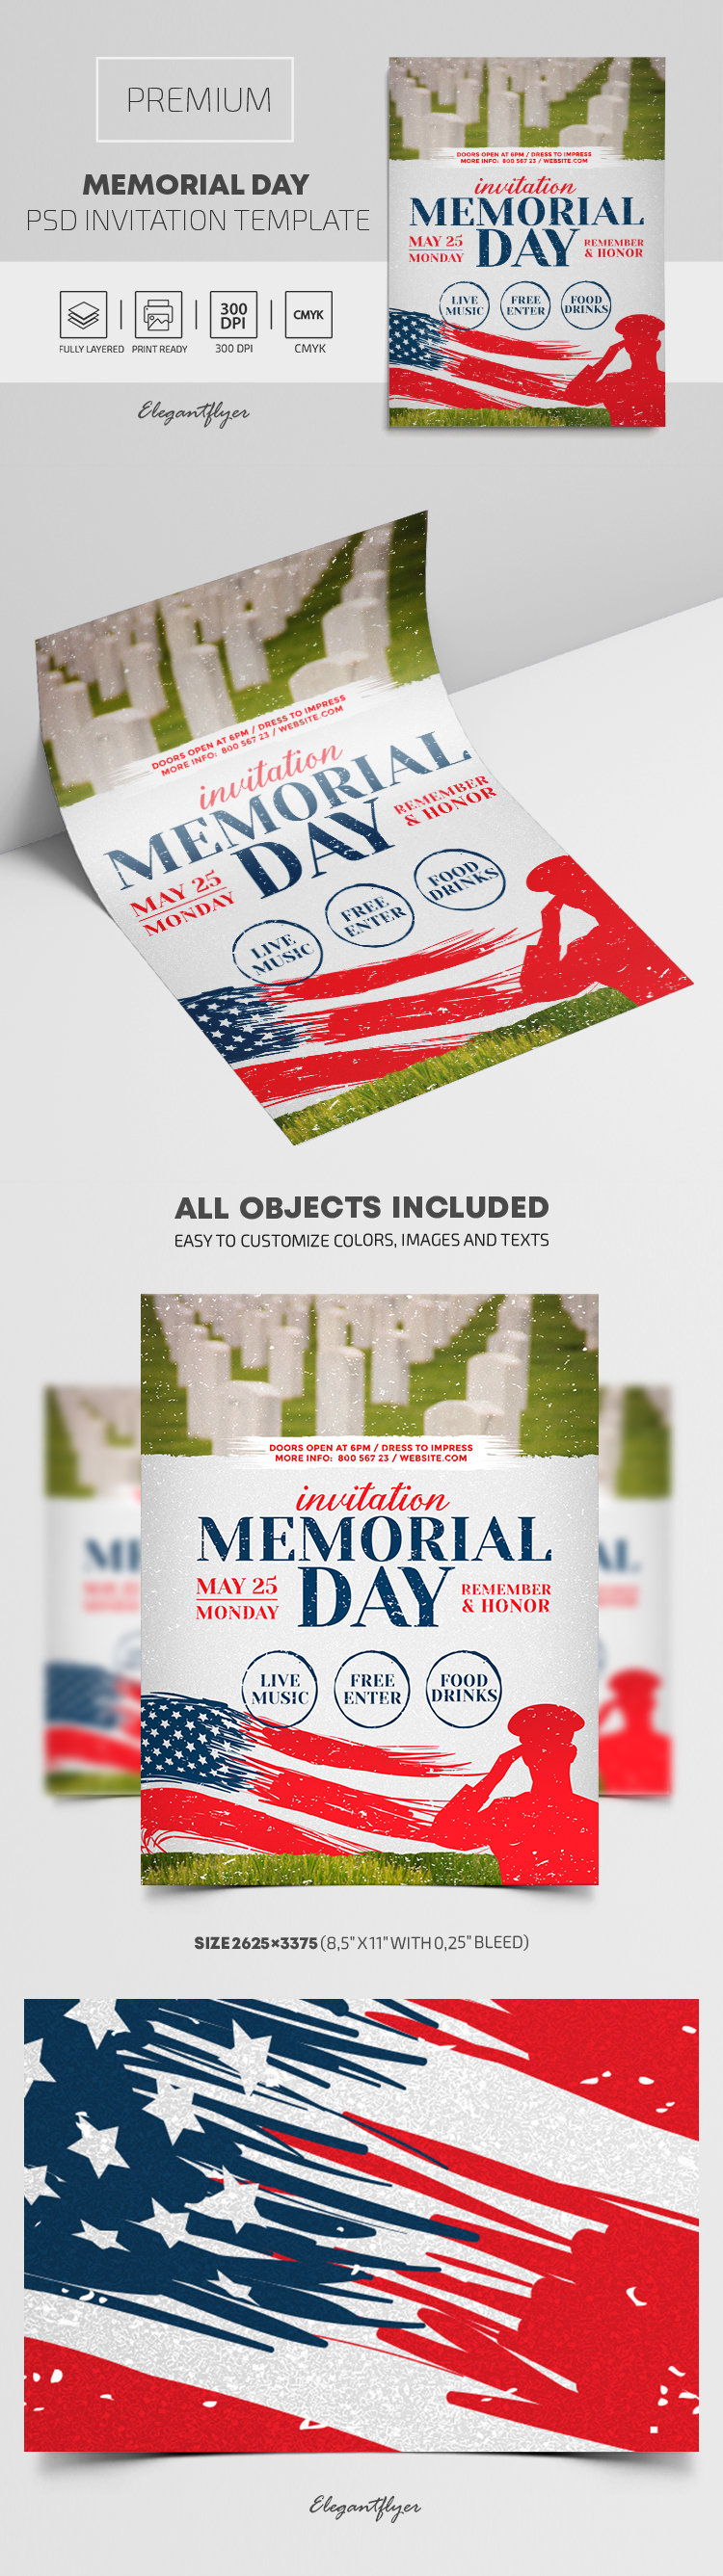 Memorial Day – Premium PSD Invitation Template